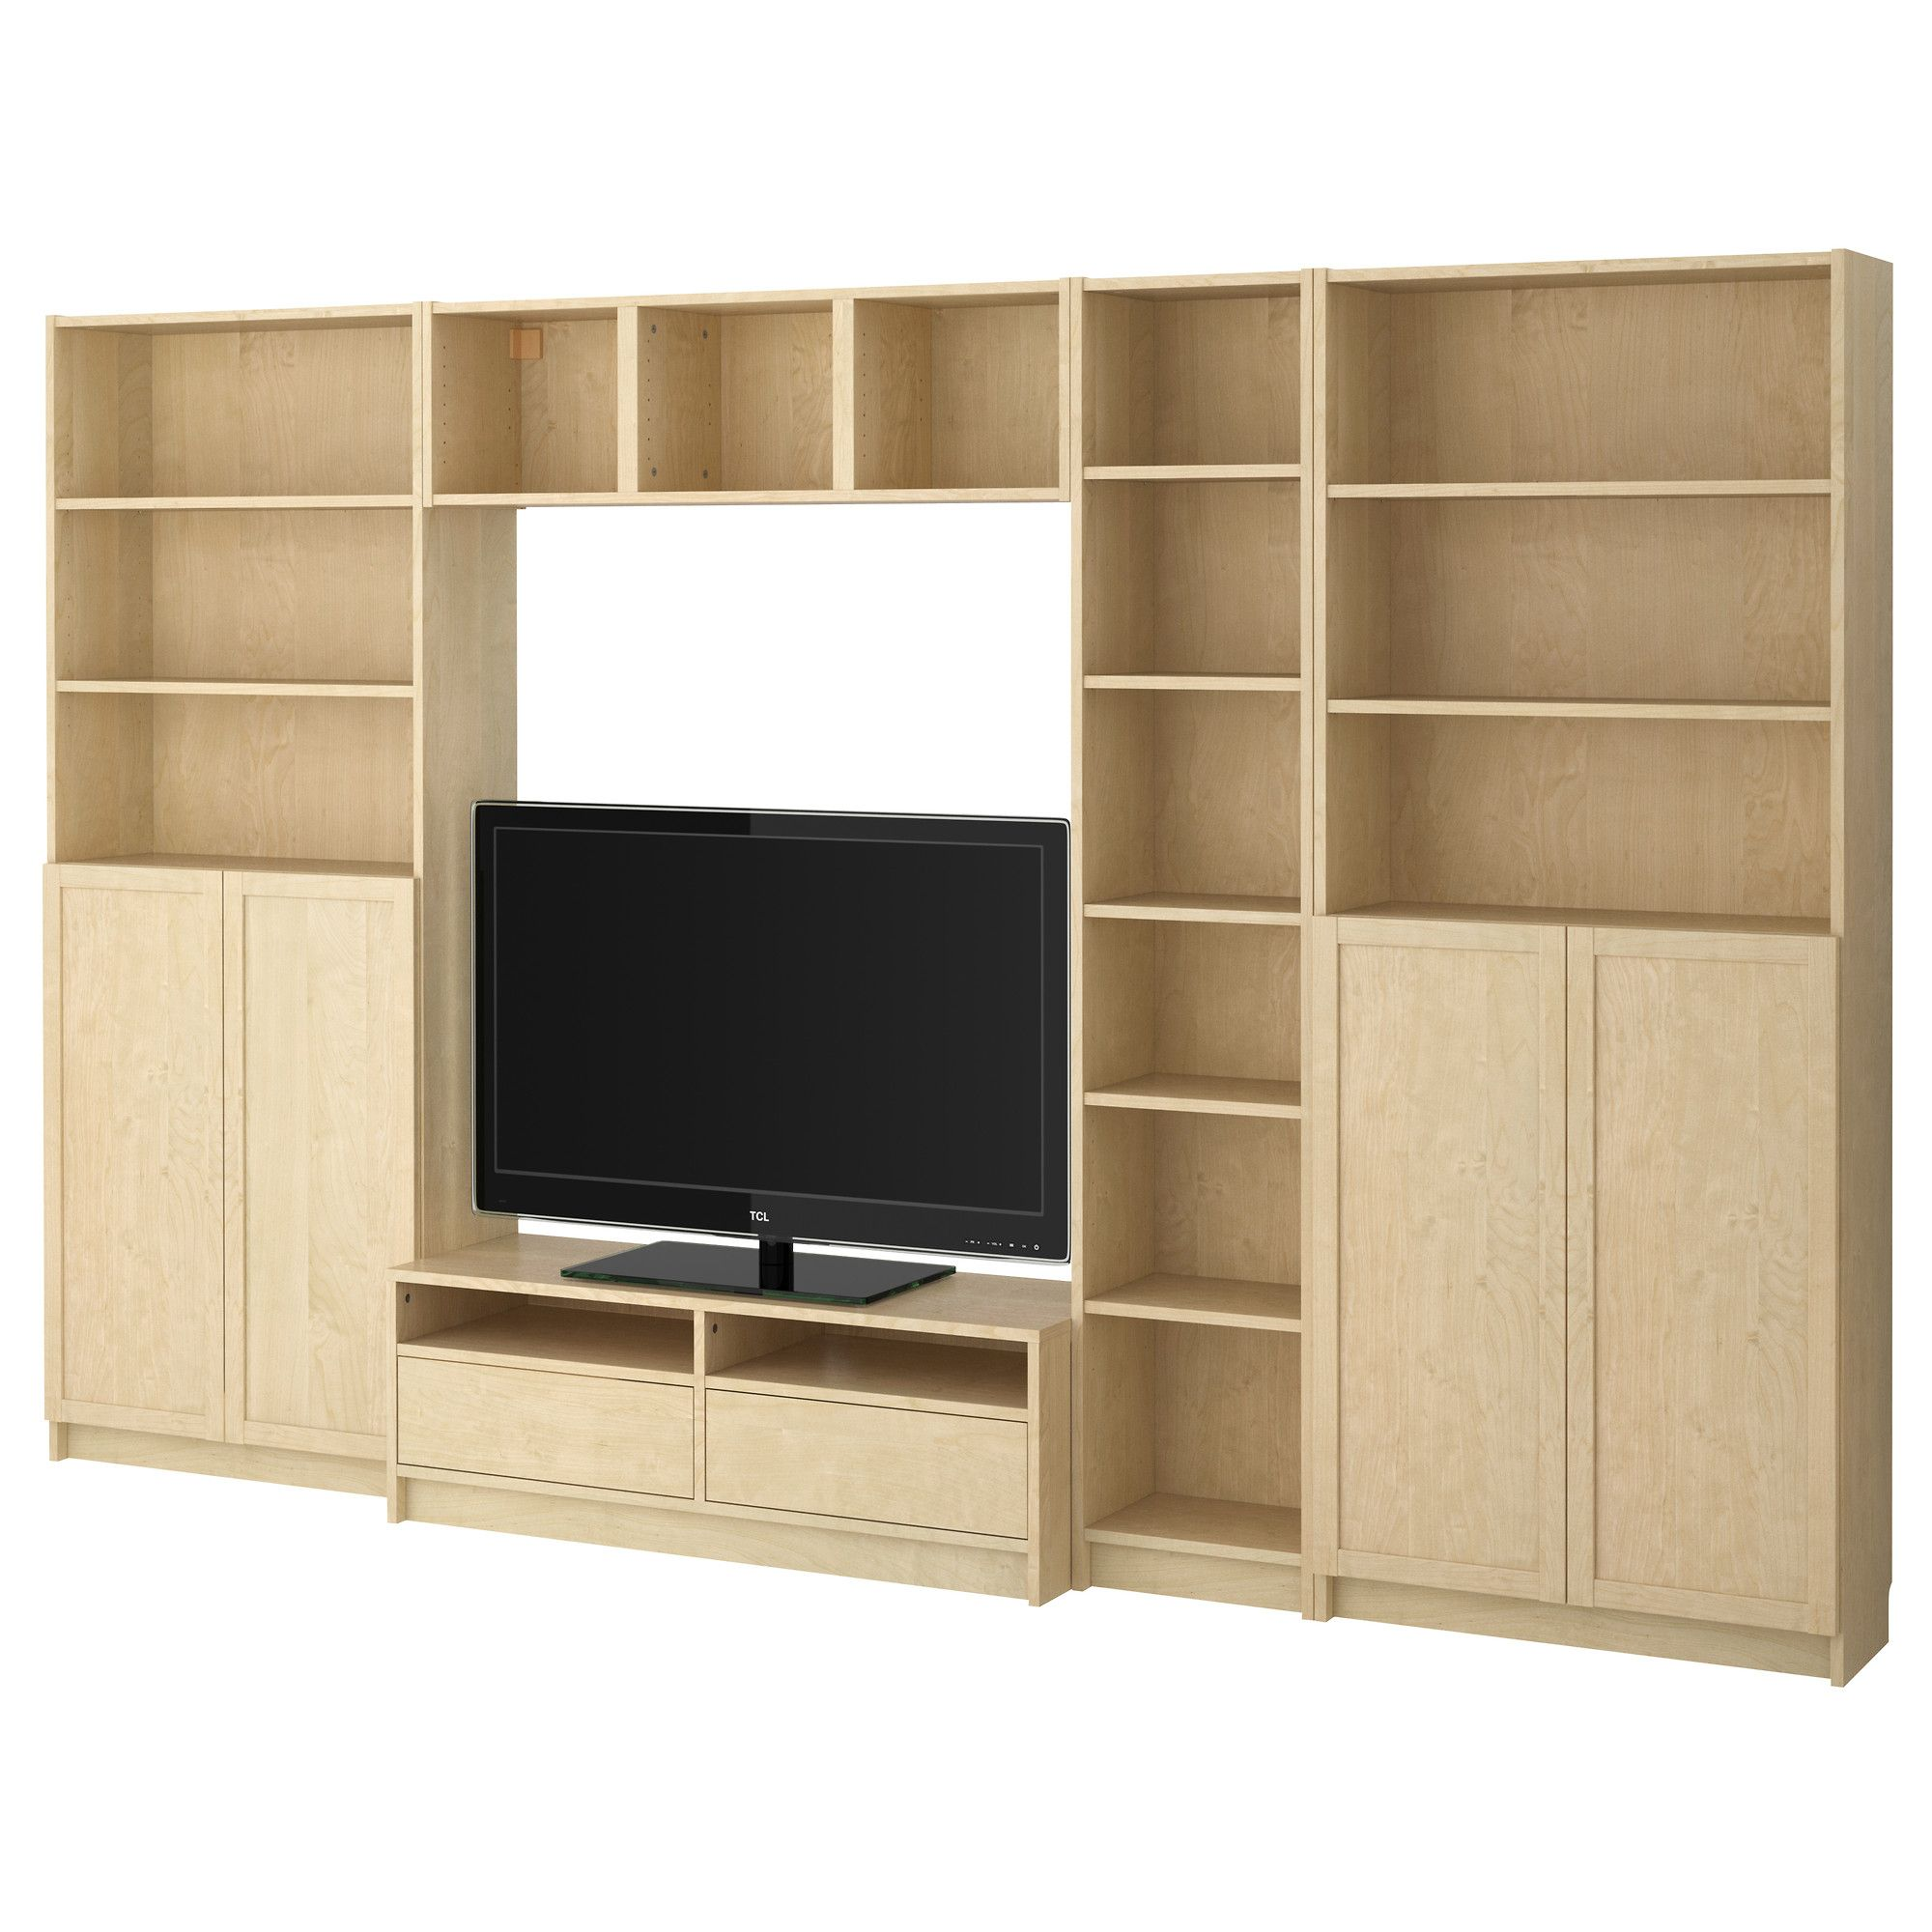 Benno Tv Meubel.Us Furniture And Home Furnishings Tv Storage Small Closet